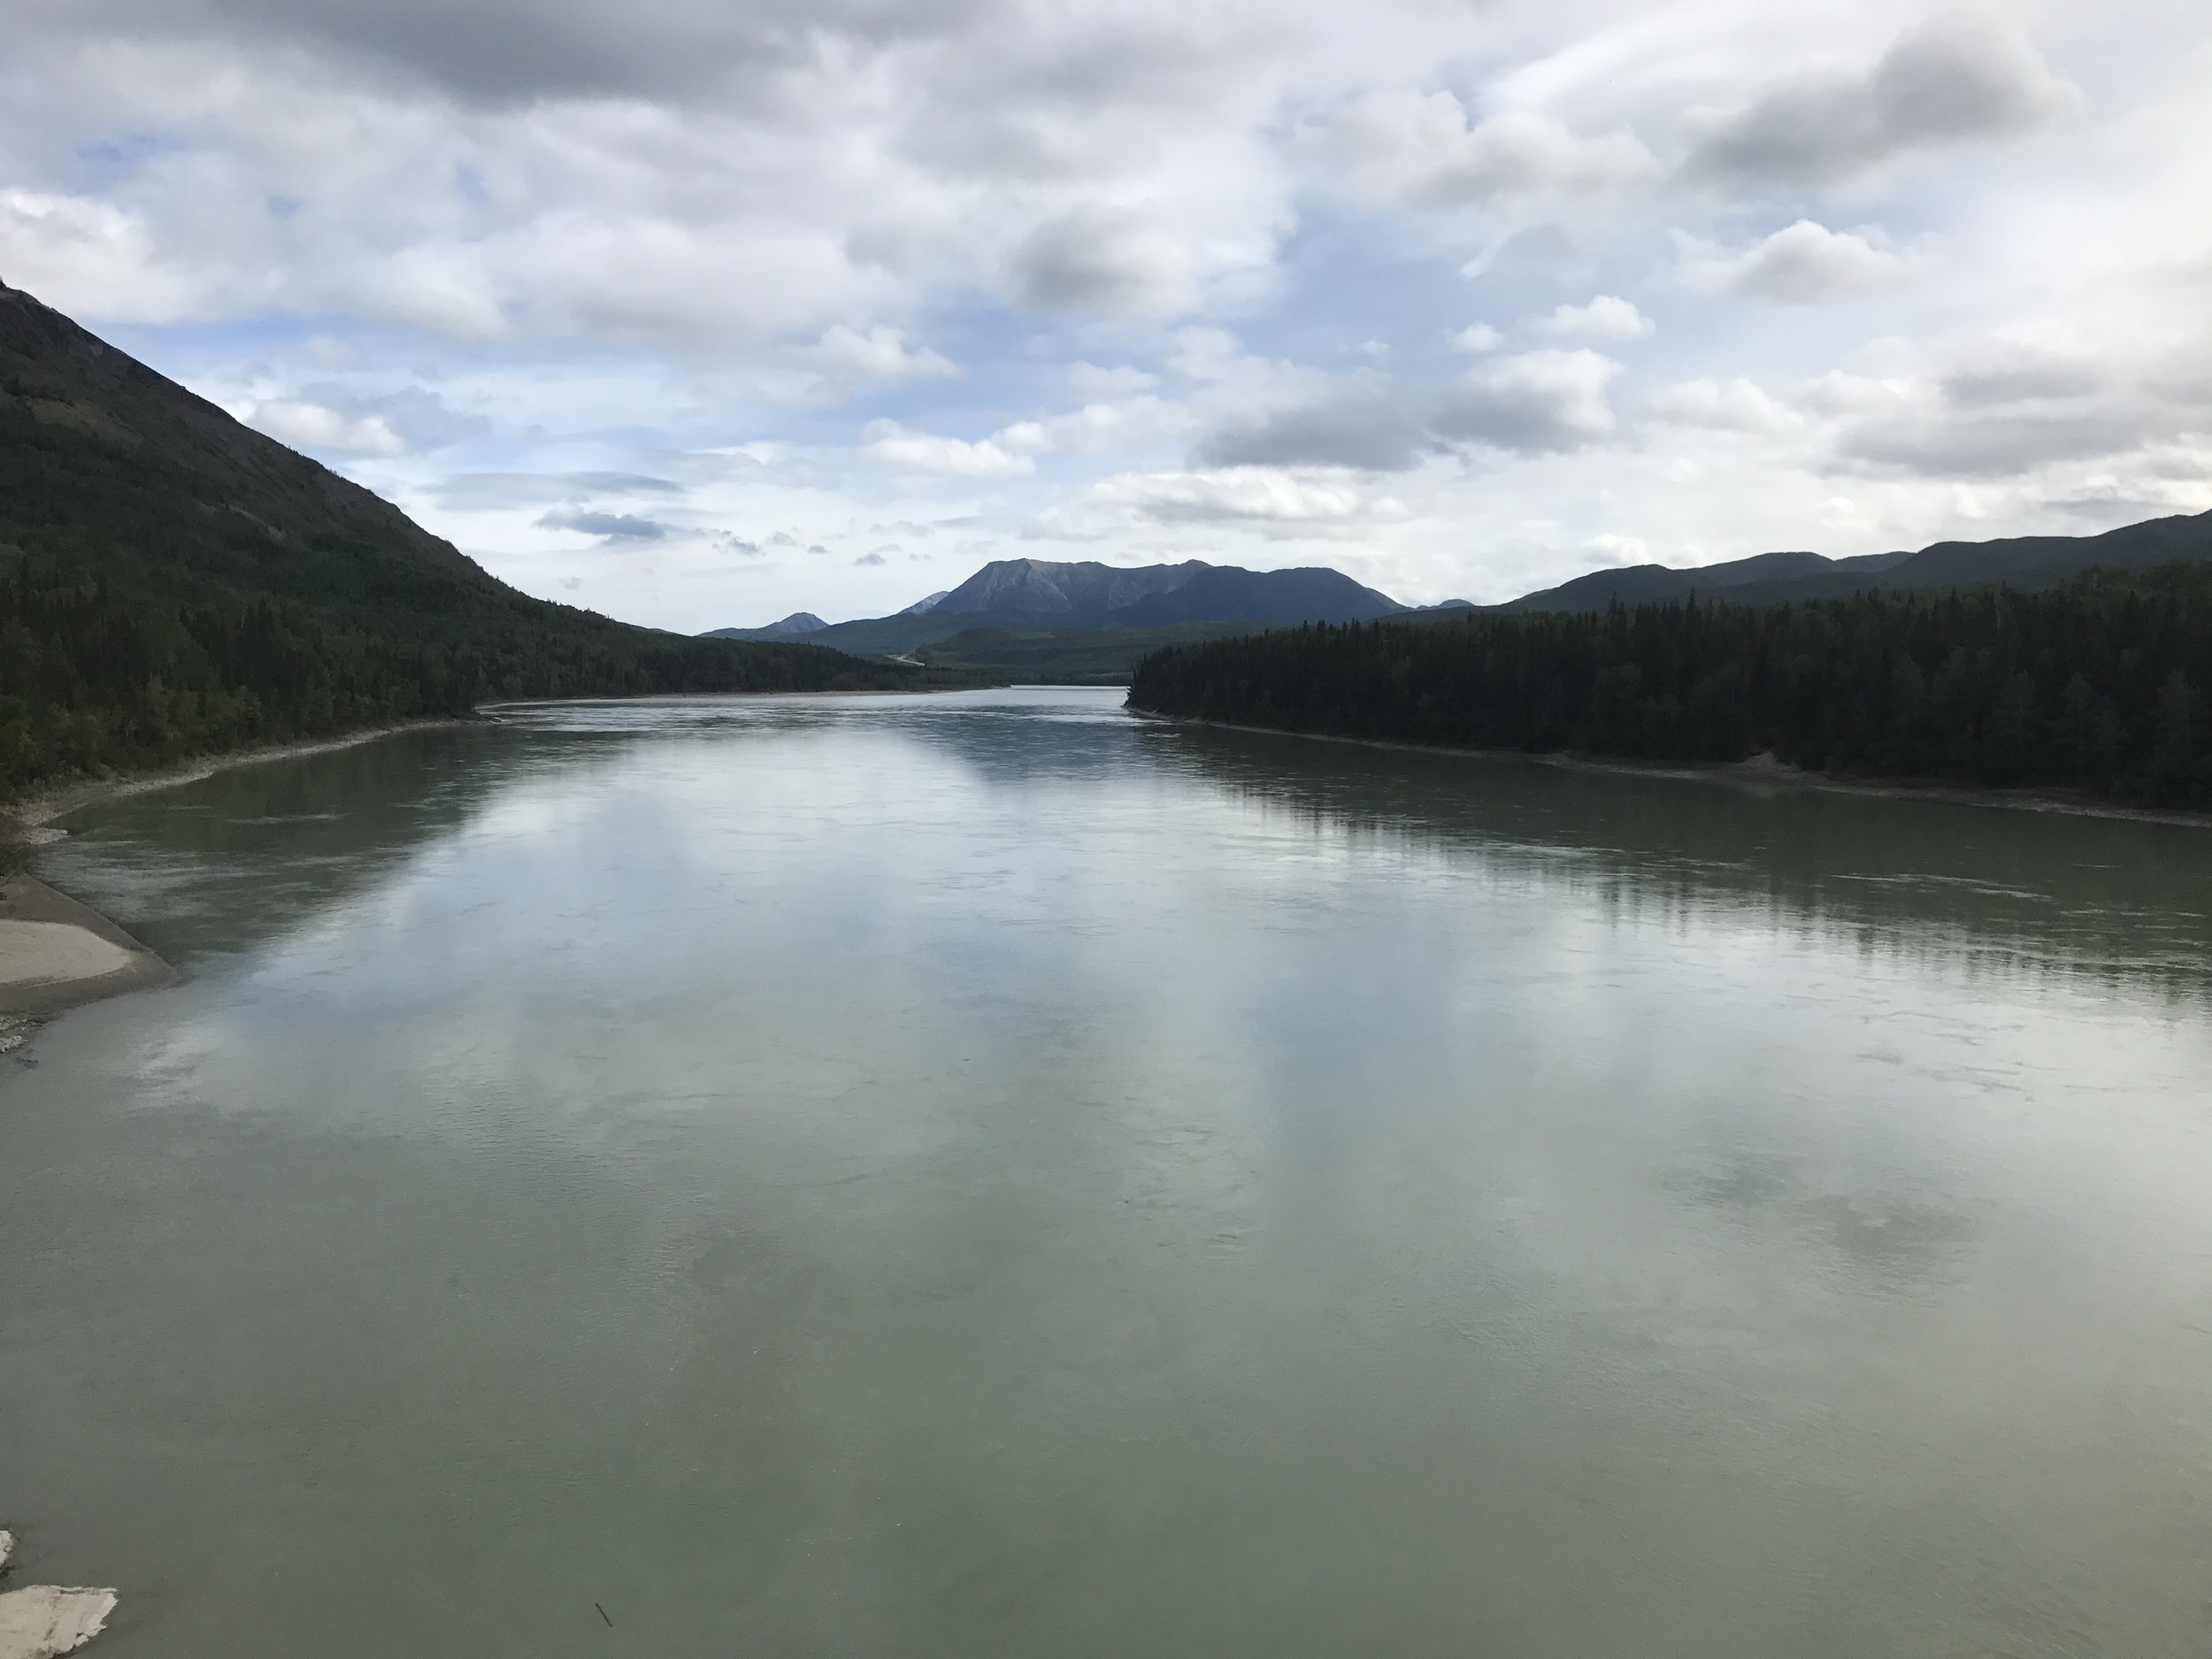 The Liard River, which is within walking distance of the campgrounds.